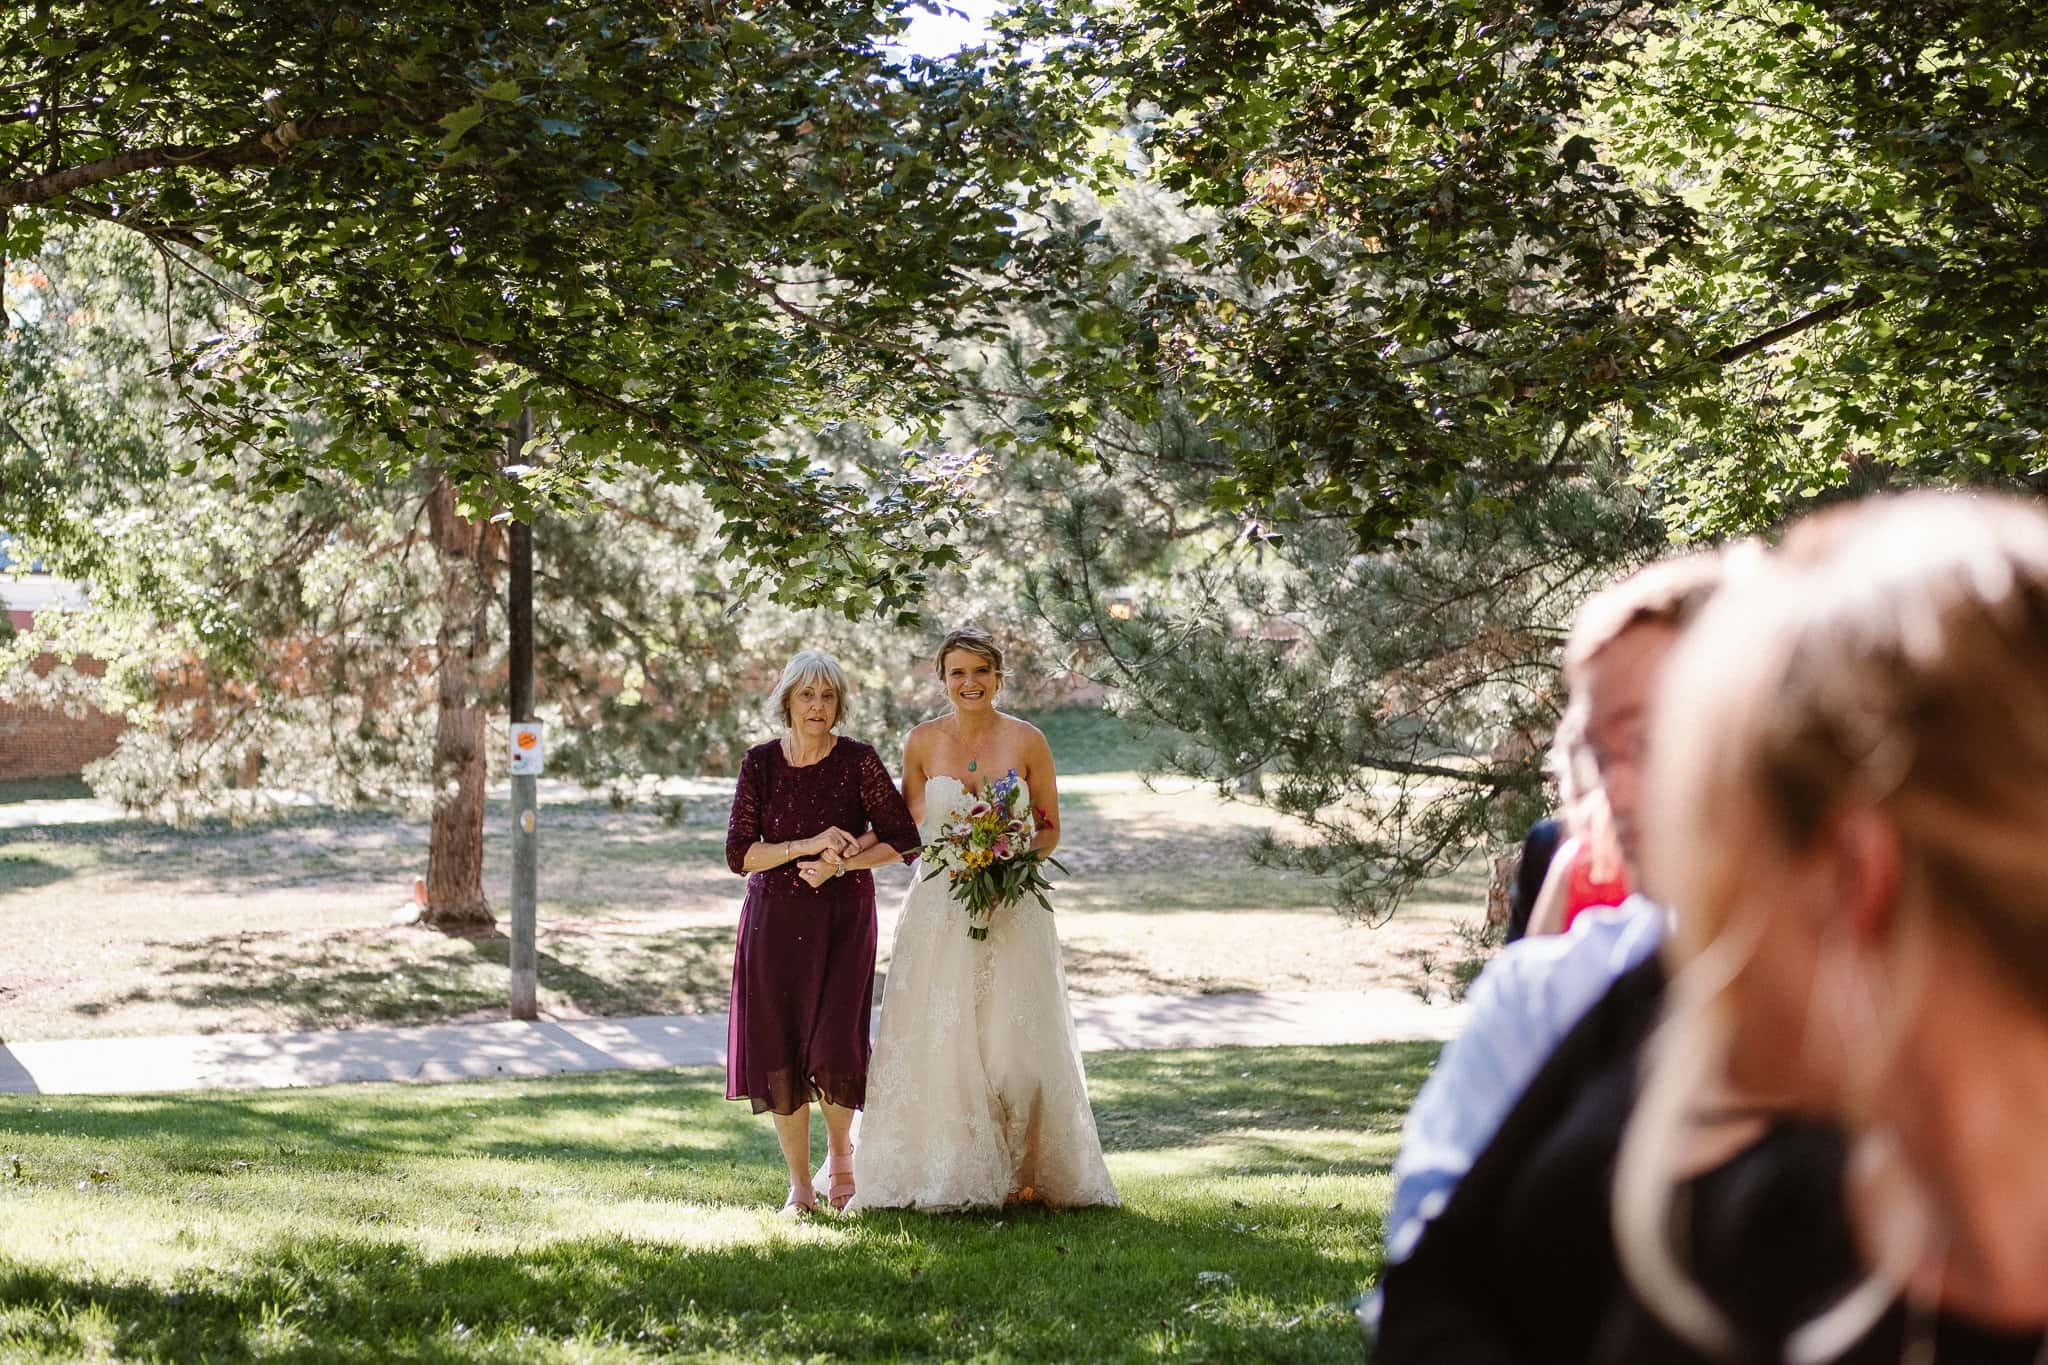 Grant Humphreys Mansion Wedding Photographer, Denver wedding photographer, Colorado wedding photographer, wedding ceremony, bride walking up aisle with her mother